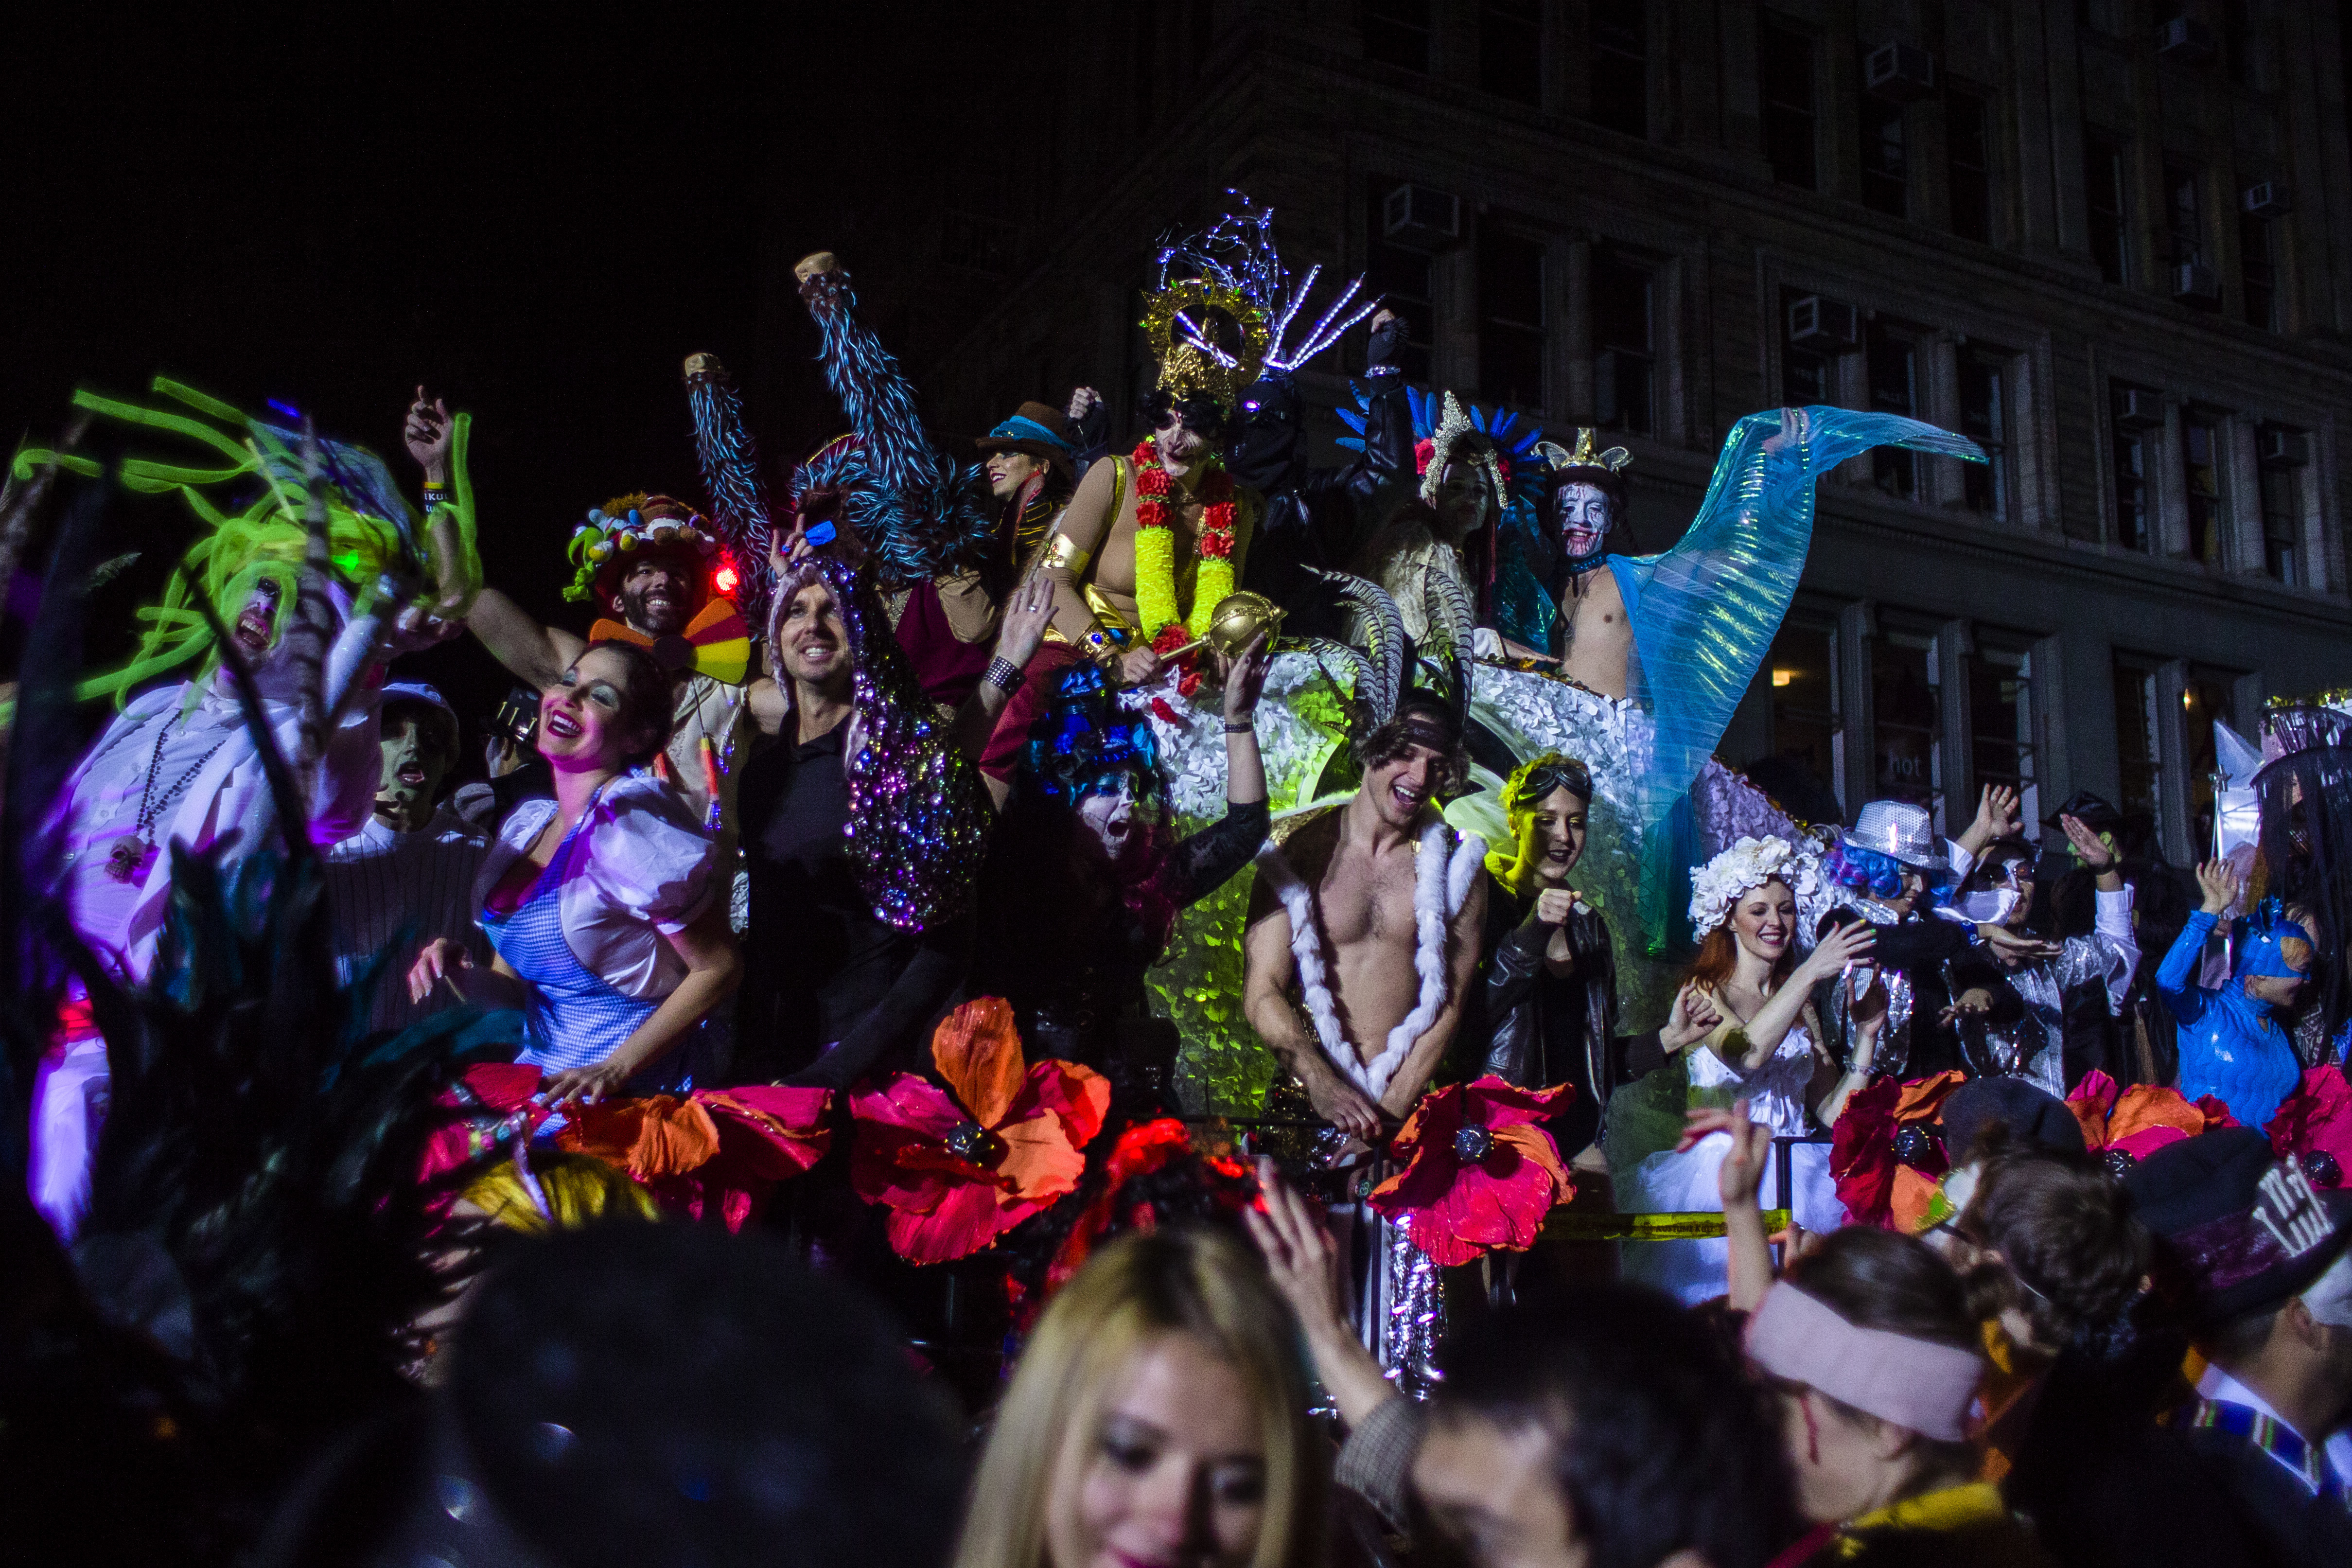 """<div class=""""meta image-caption""""><div class=""""origin-logo origin-image none""""><span>none</span></div><span class=""""caption-text"""">Revelers march during the Greenwich Village Halloween Parade in New York, Monday, Oct. 31, 2016. (AP Photo/Andres Kudacki)</span></div>"""